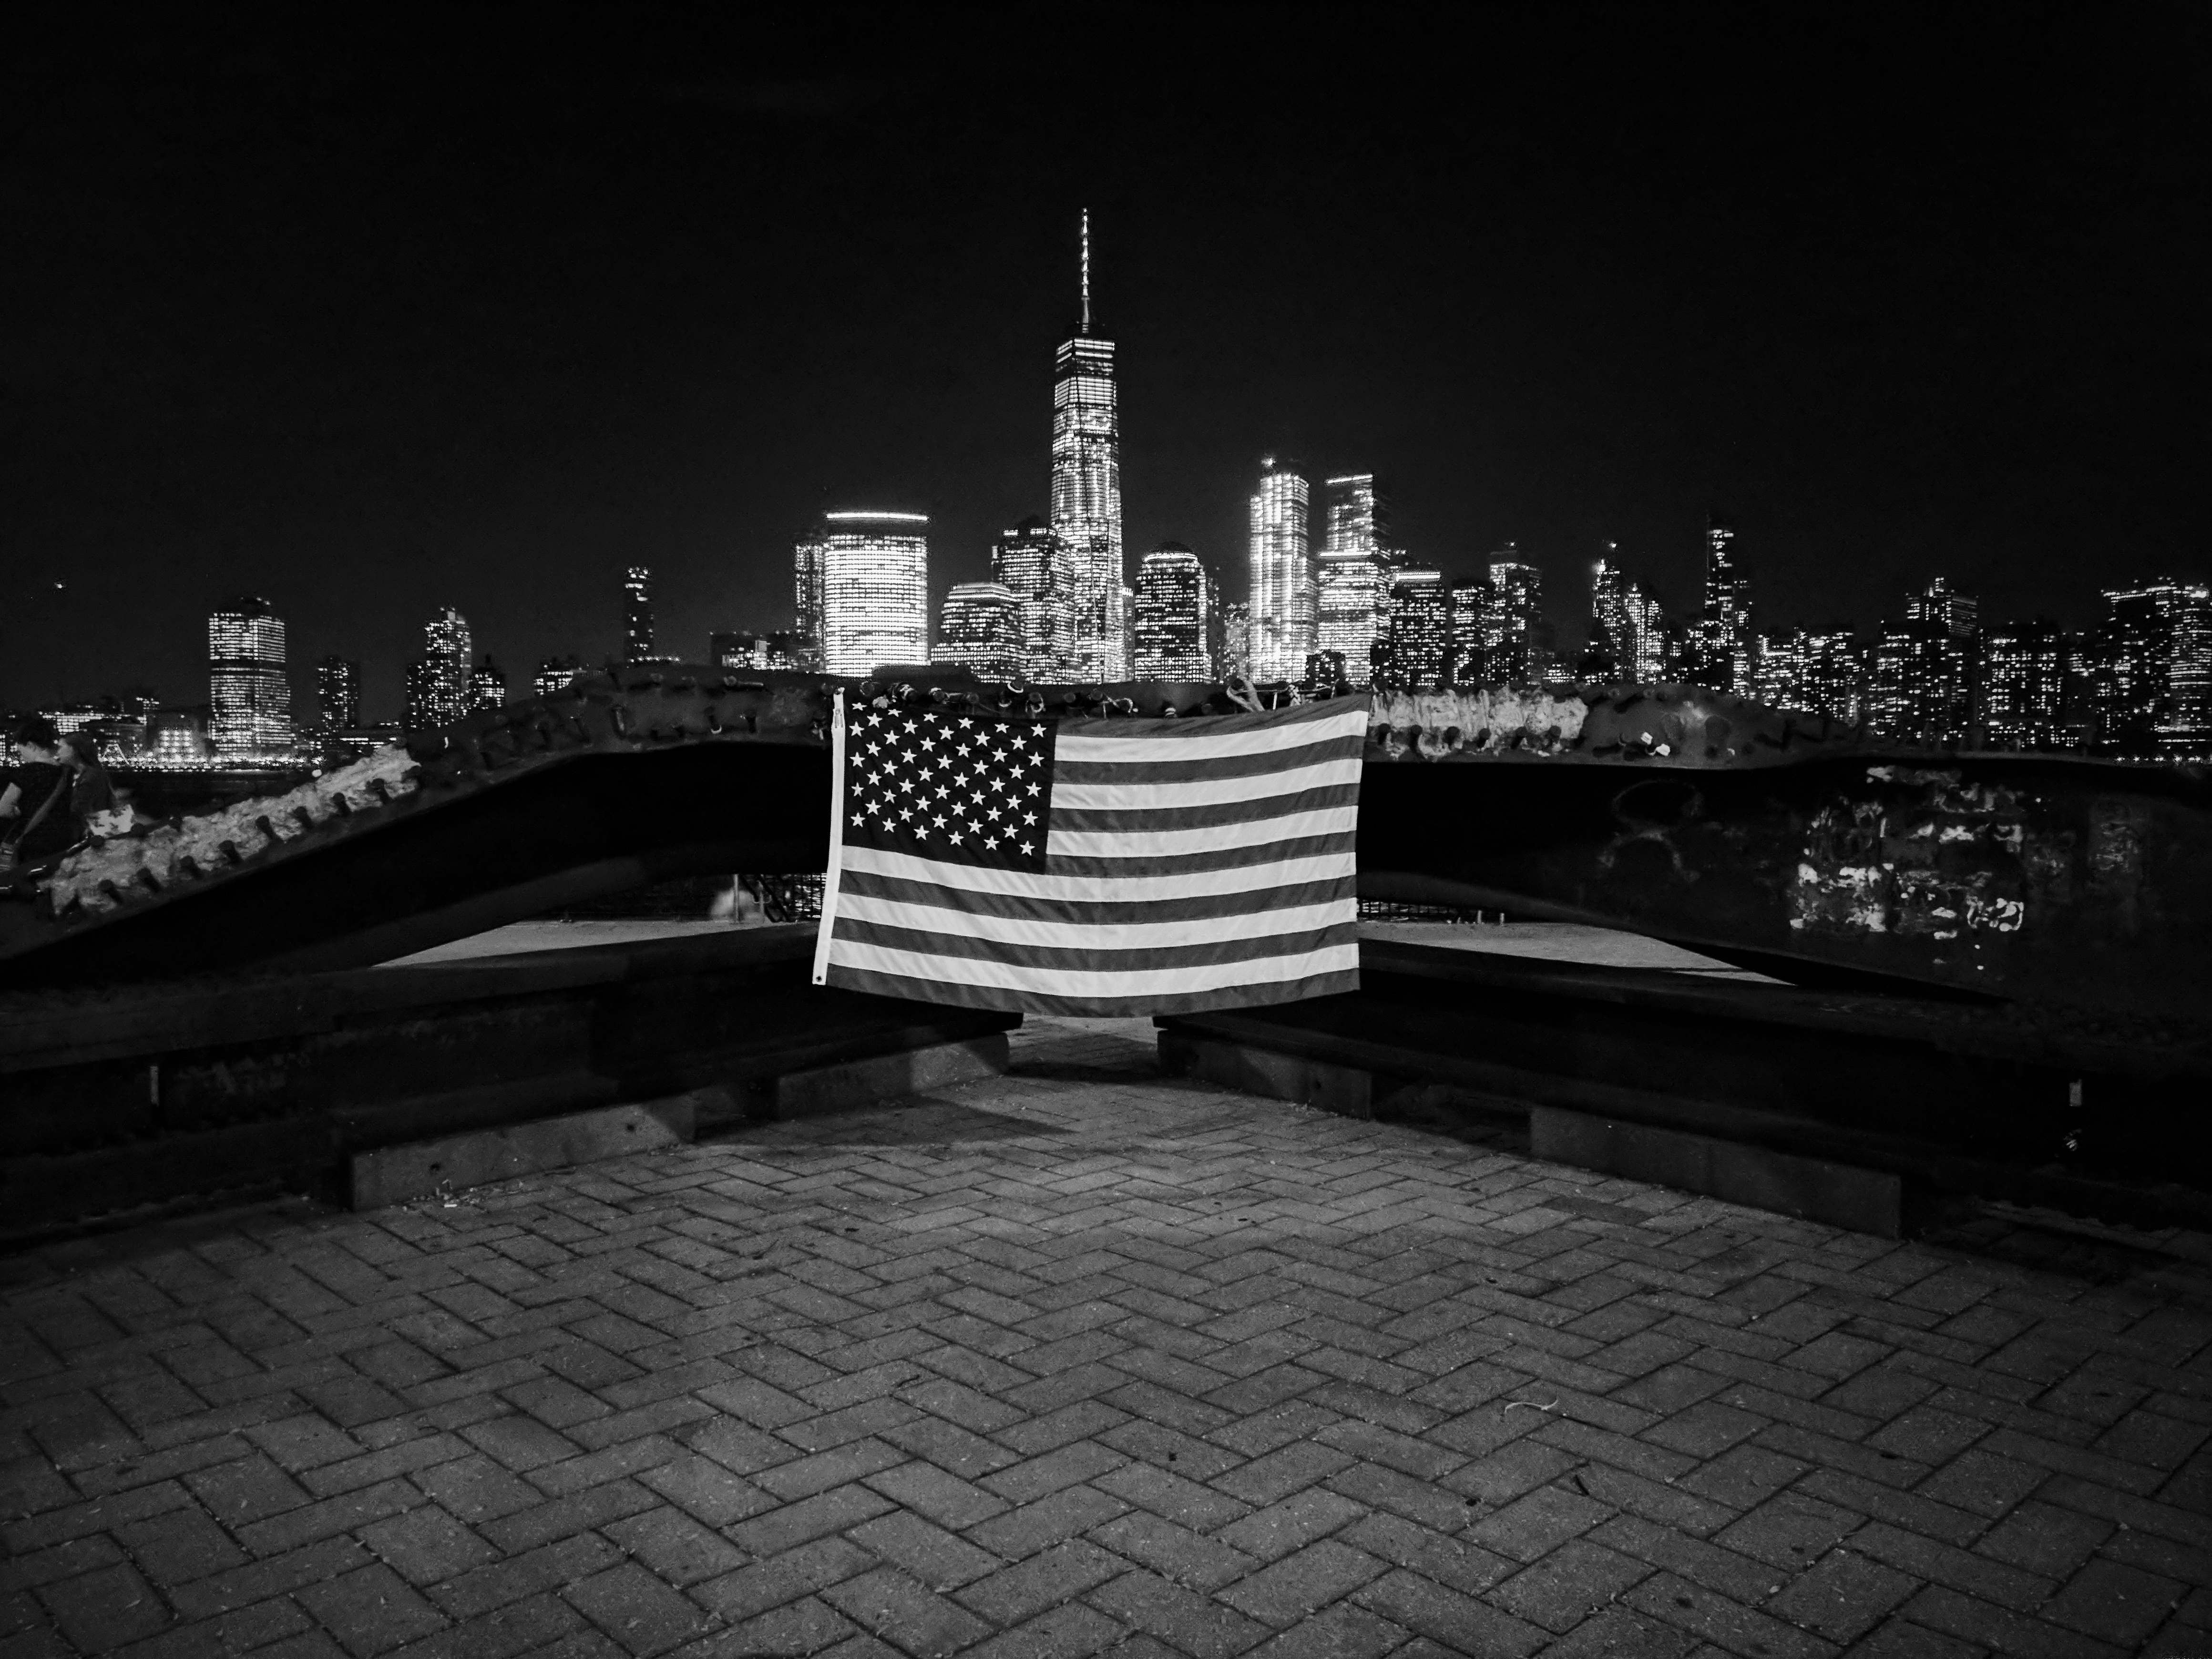 NYC seen from NJ 911 monument